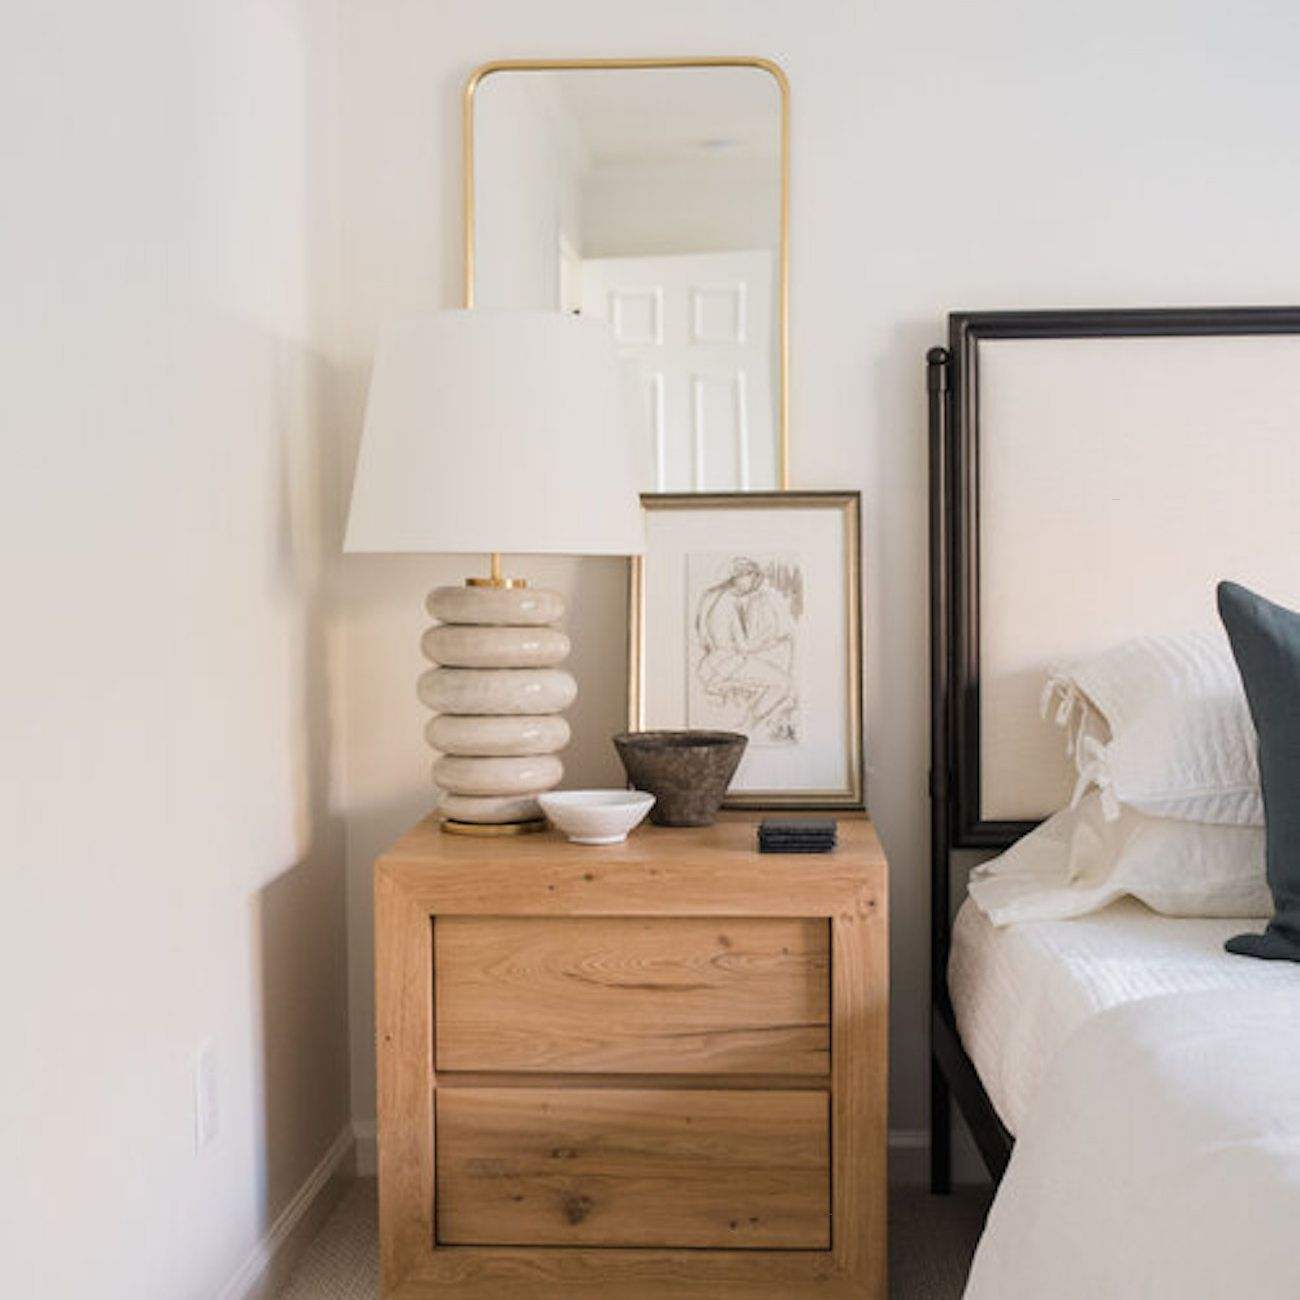 Nightstand with artful decor and lamp.